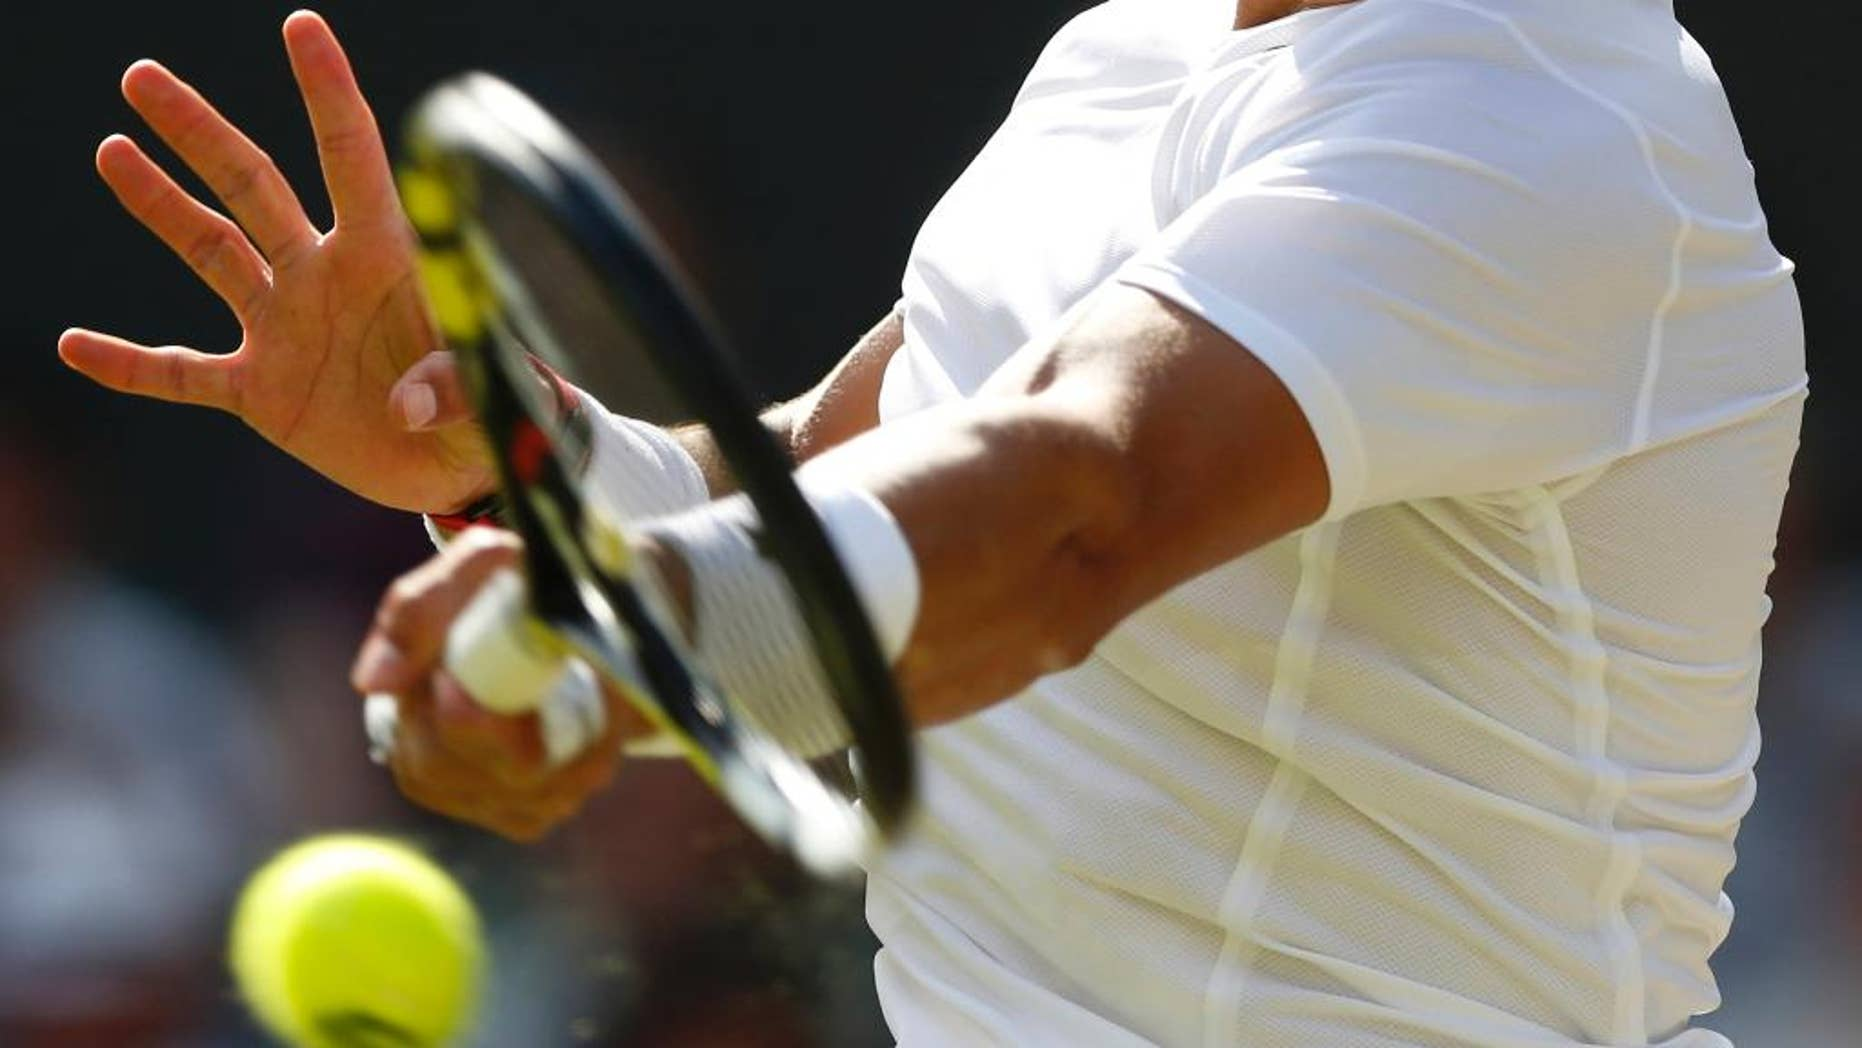 Rafael Nadal of Spain plays a return to Nick Kyrgios of Australia during their men's singles match at the All England Lawn Tennis Championships in Wimbledon, London, Tuesday July 1, 2014. (AP Photo/Ben Curtis)